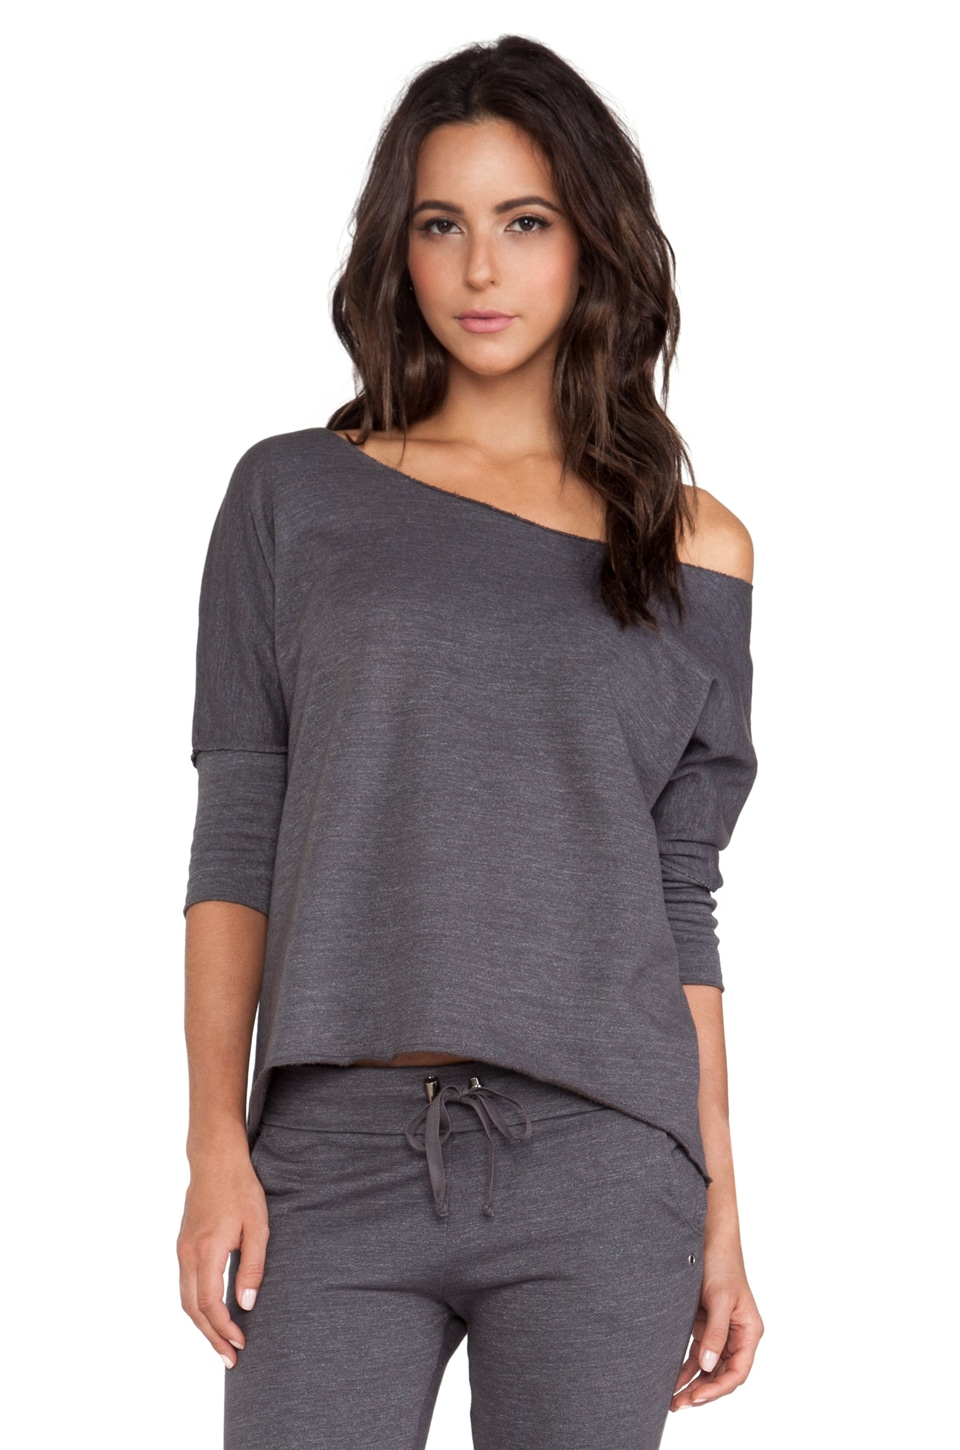 SOLOW So Low Dolman Tee in Carbon